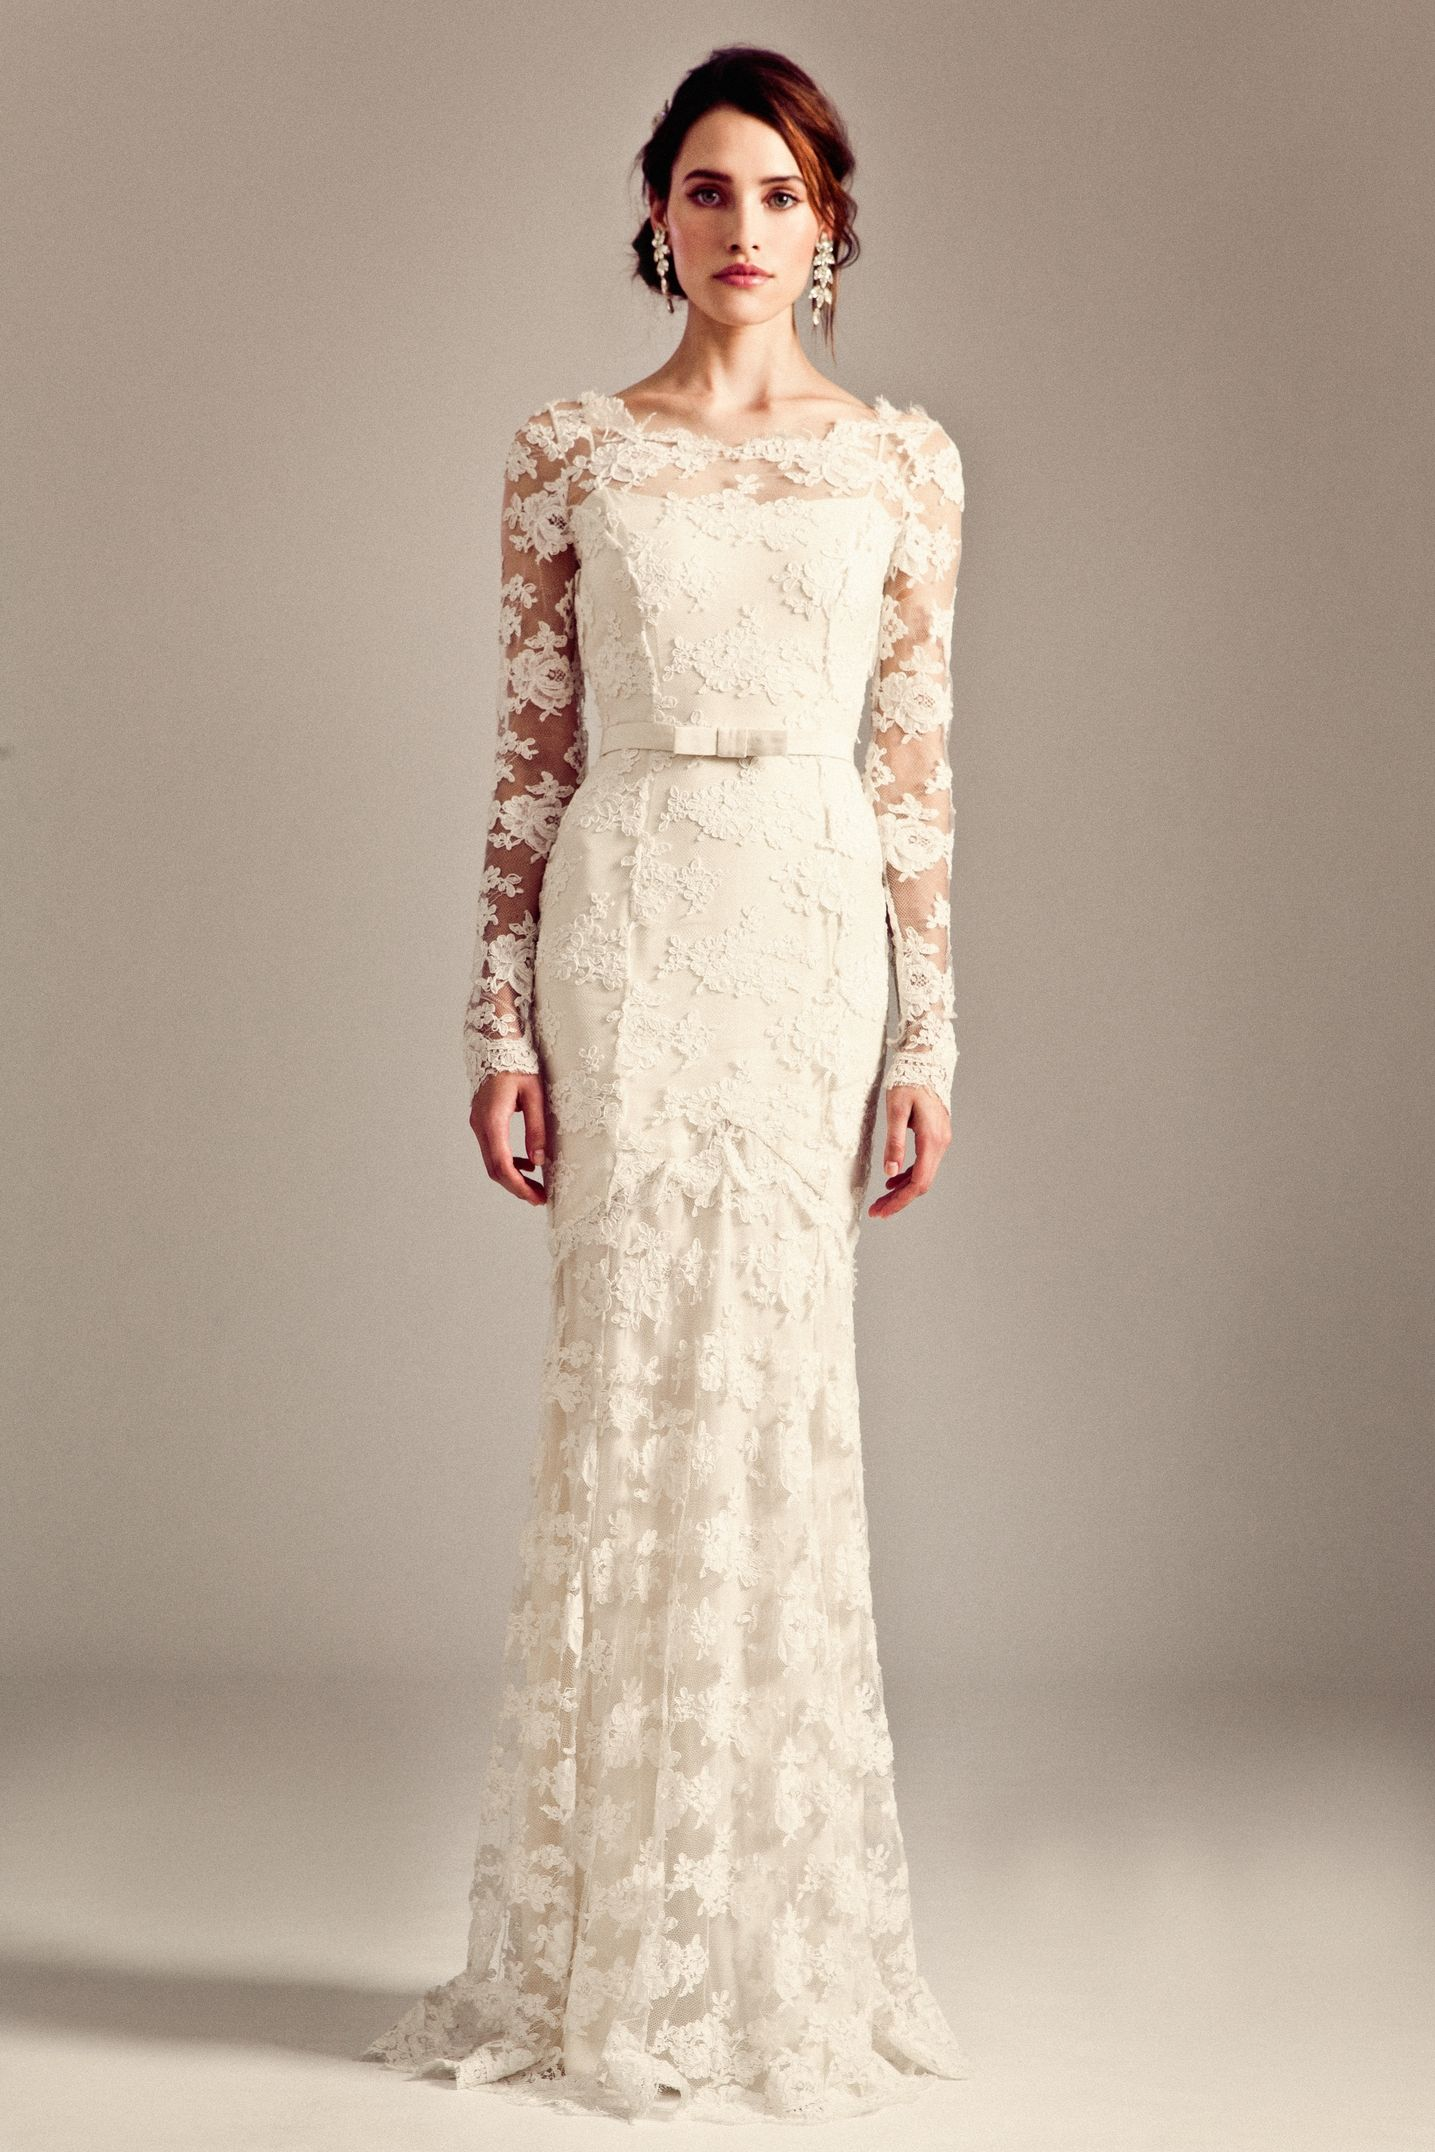 Best wedding dress boutiques in london  Florence Dress from the Temperley Bridal Iris Collection